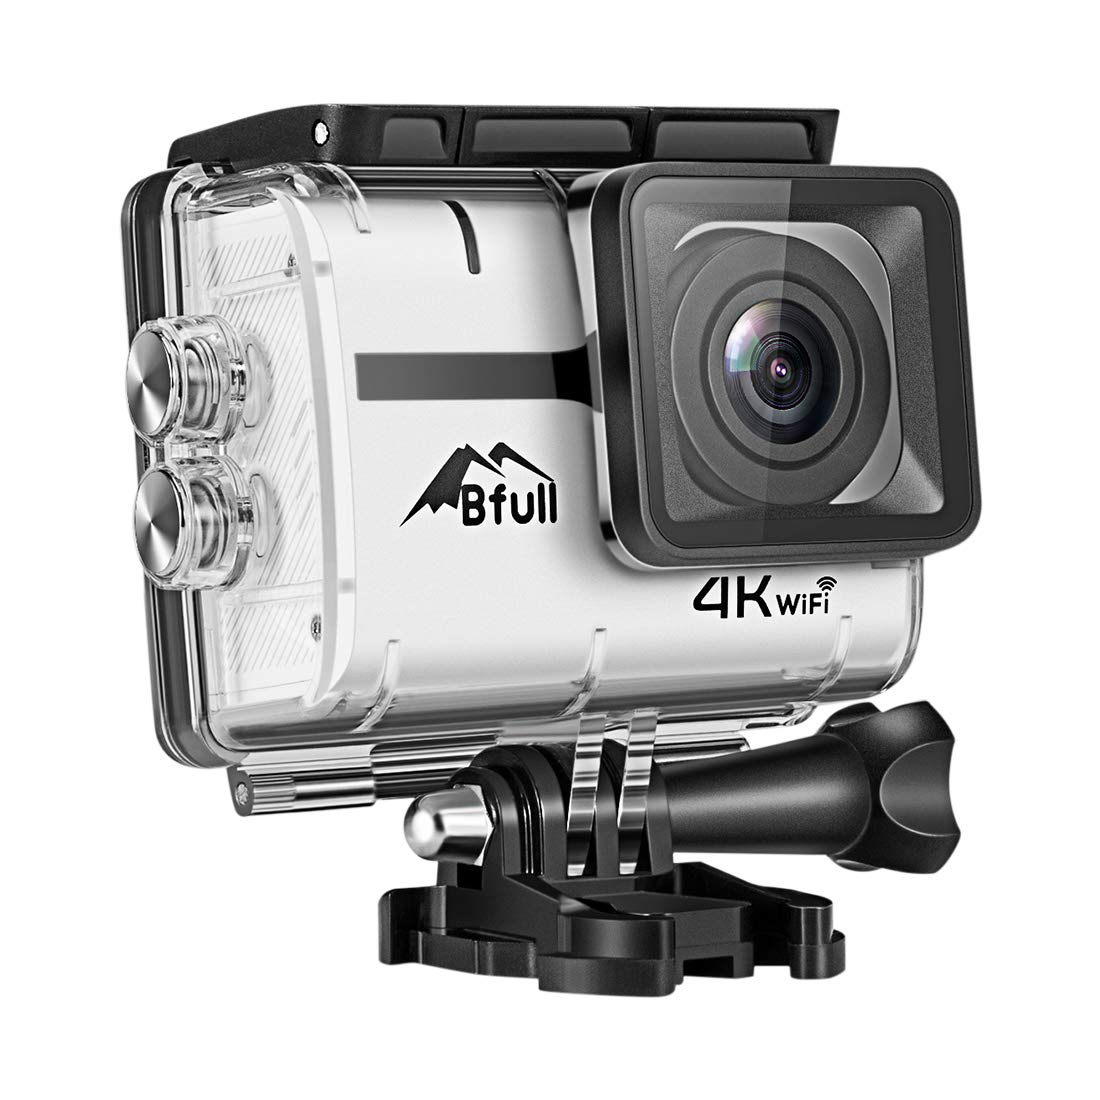 Bfull Action Camera, 4K 16MP Sport Action Camera WIFI 170°Wide Angle Len with SONY Sensor Full HD Waterproof 30m Underwater DV Camcorder with 2 Rechargeable Batteries and Mounting Accessory Kits by BFULL